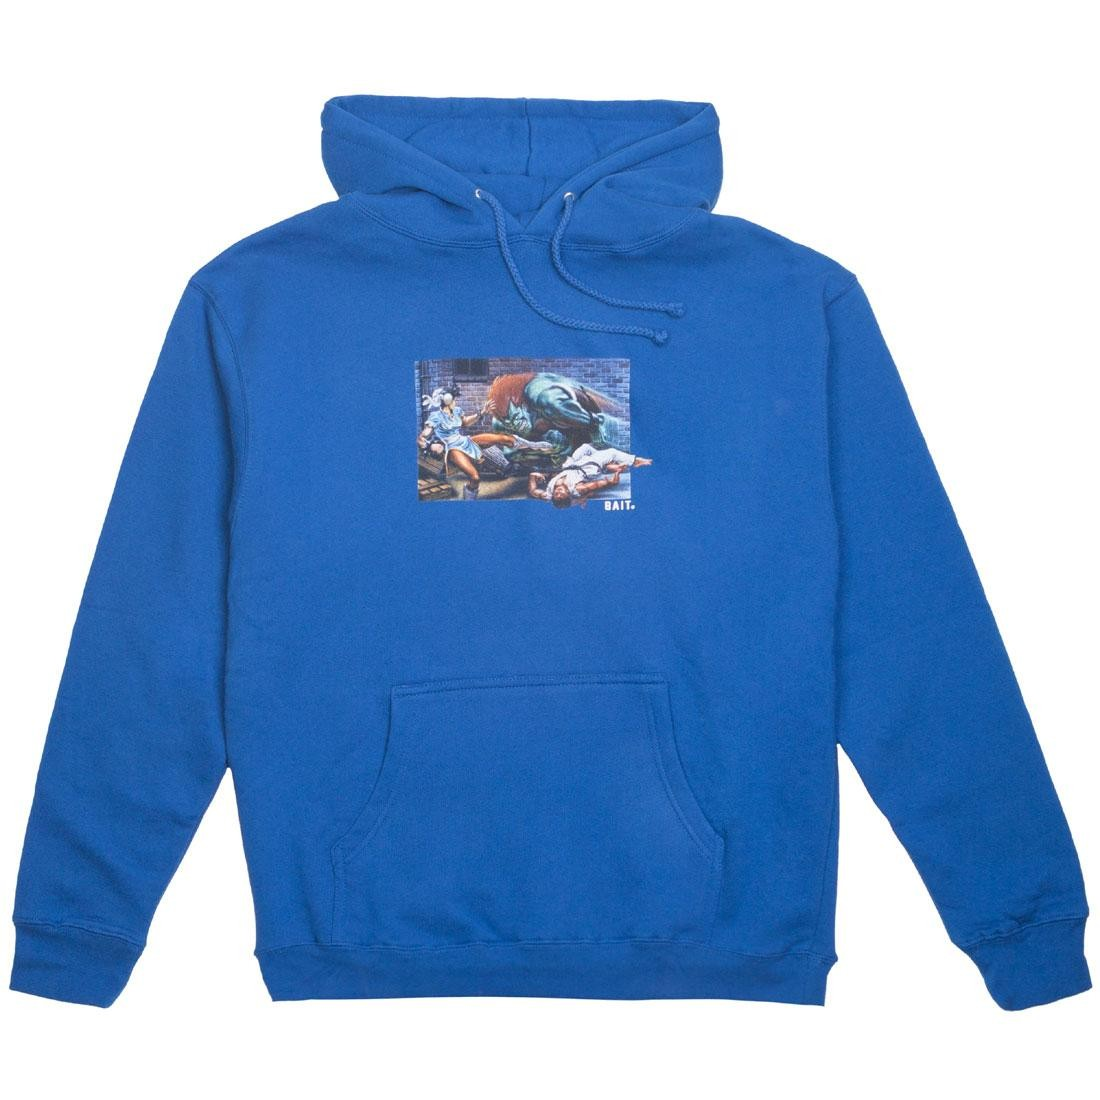 BAIT x Street Fighter Men The World Warrior Hoody (blue / royal)